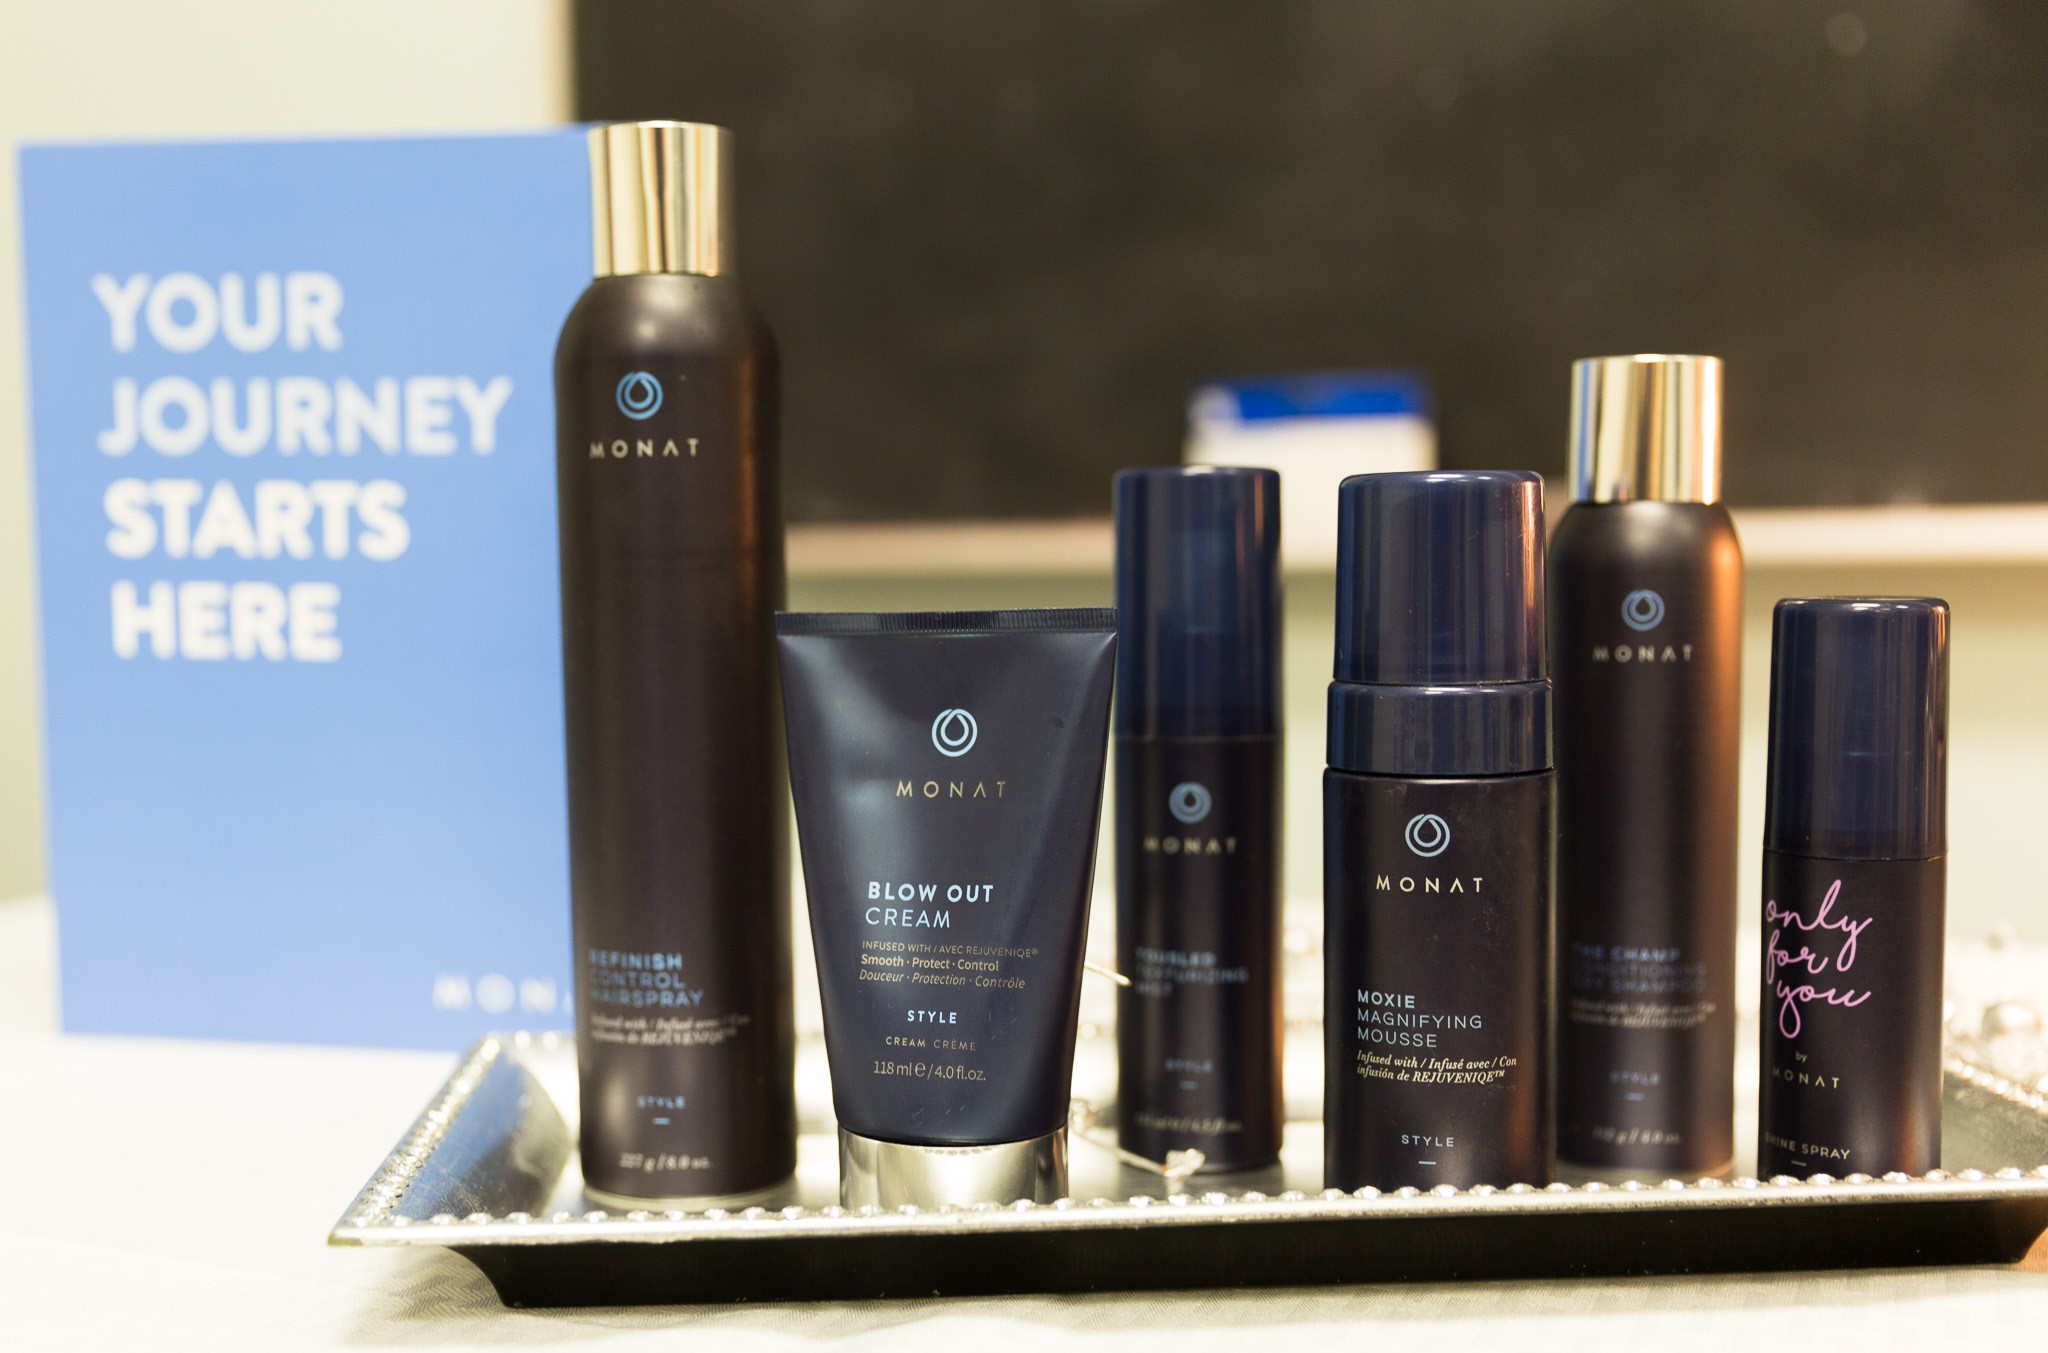 monat hair care